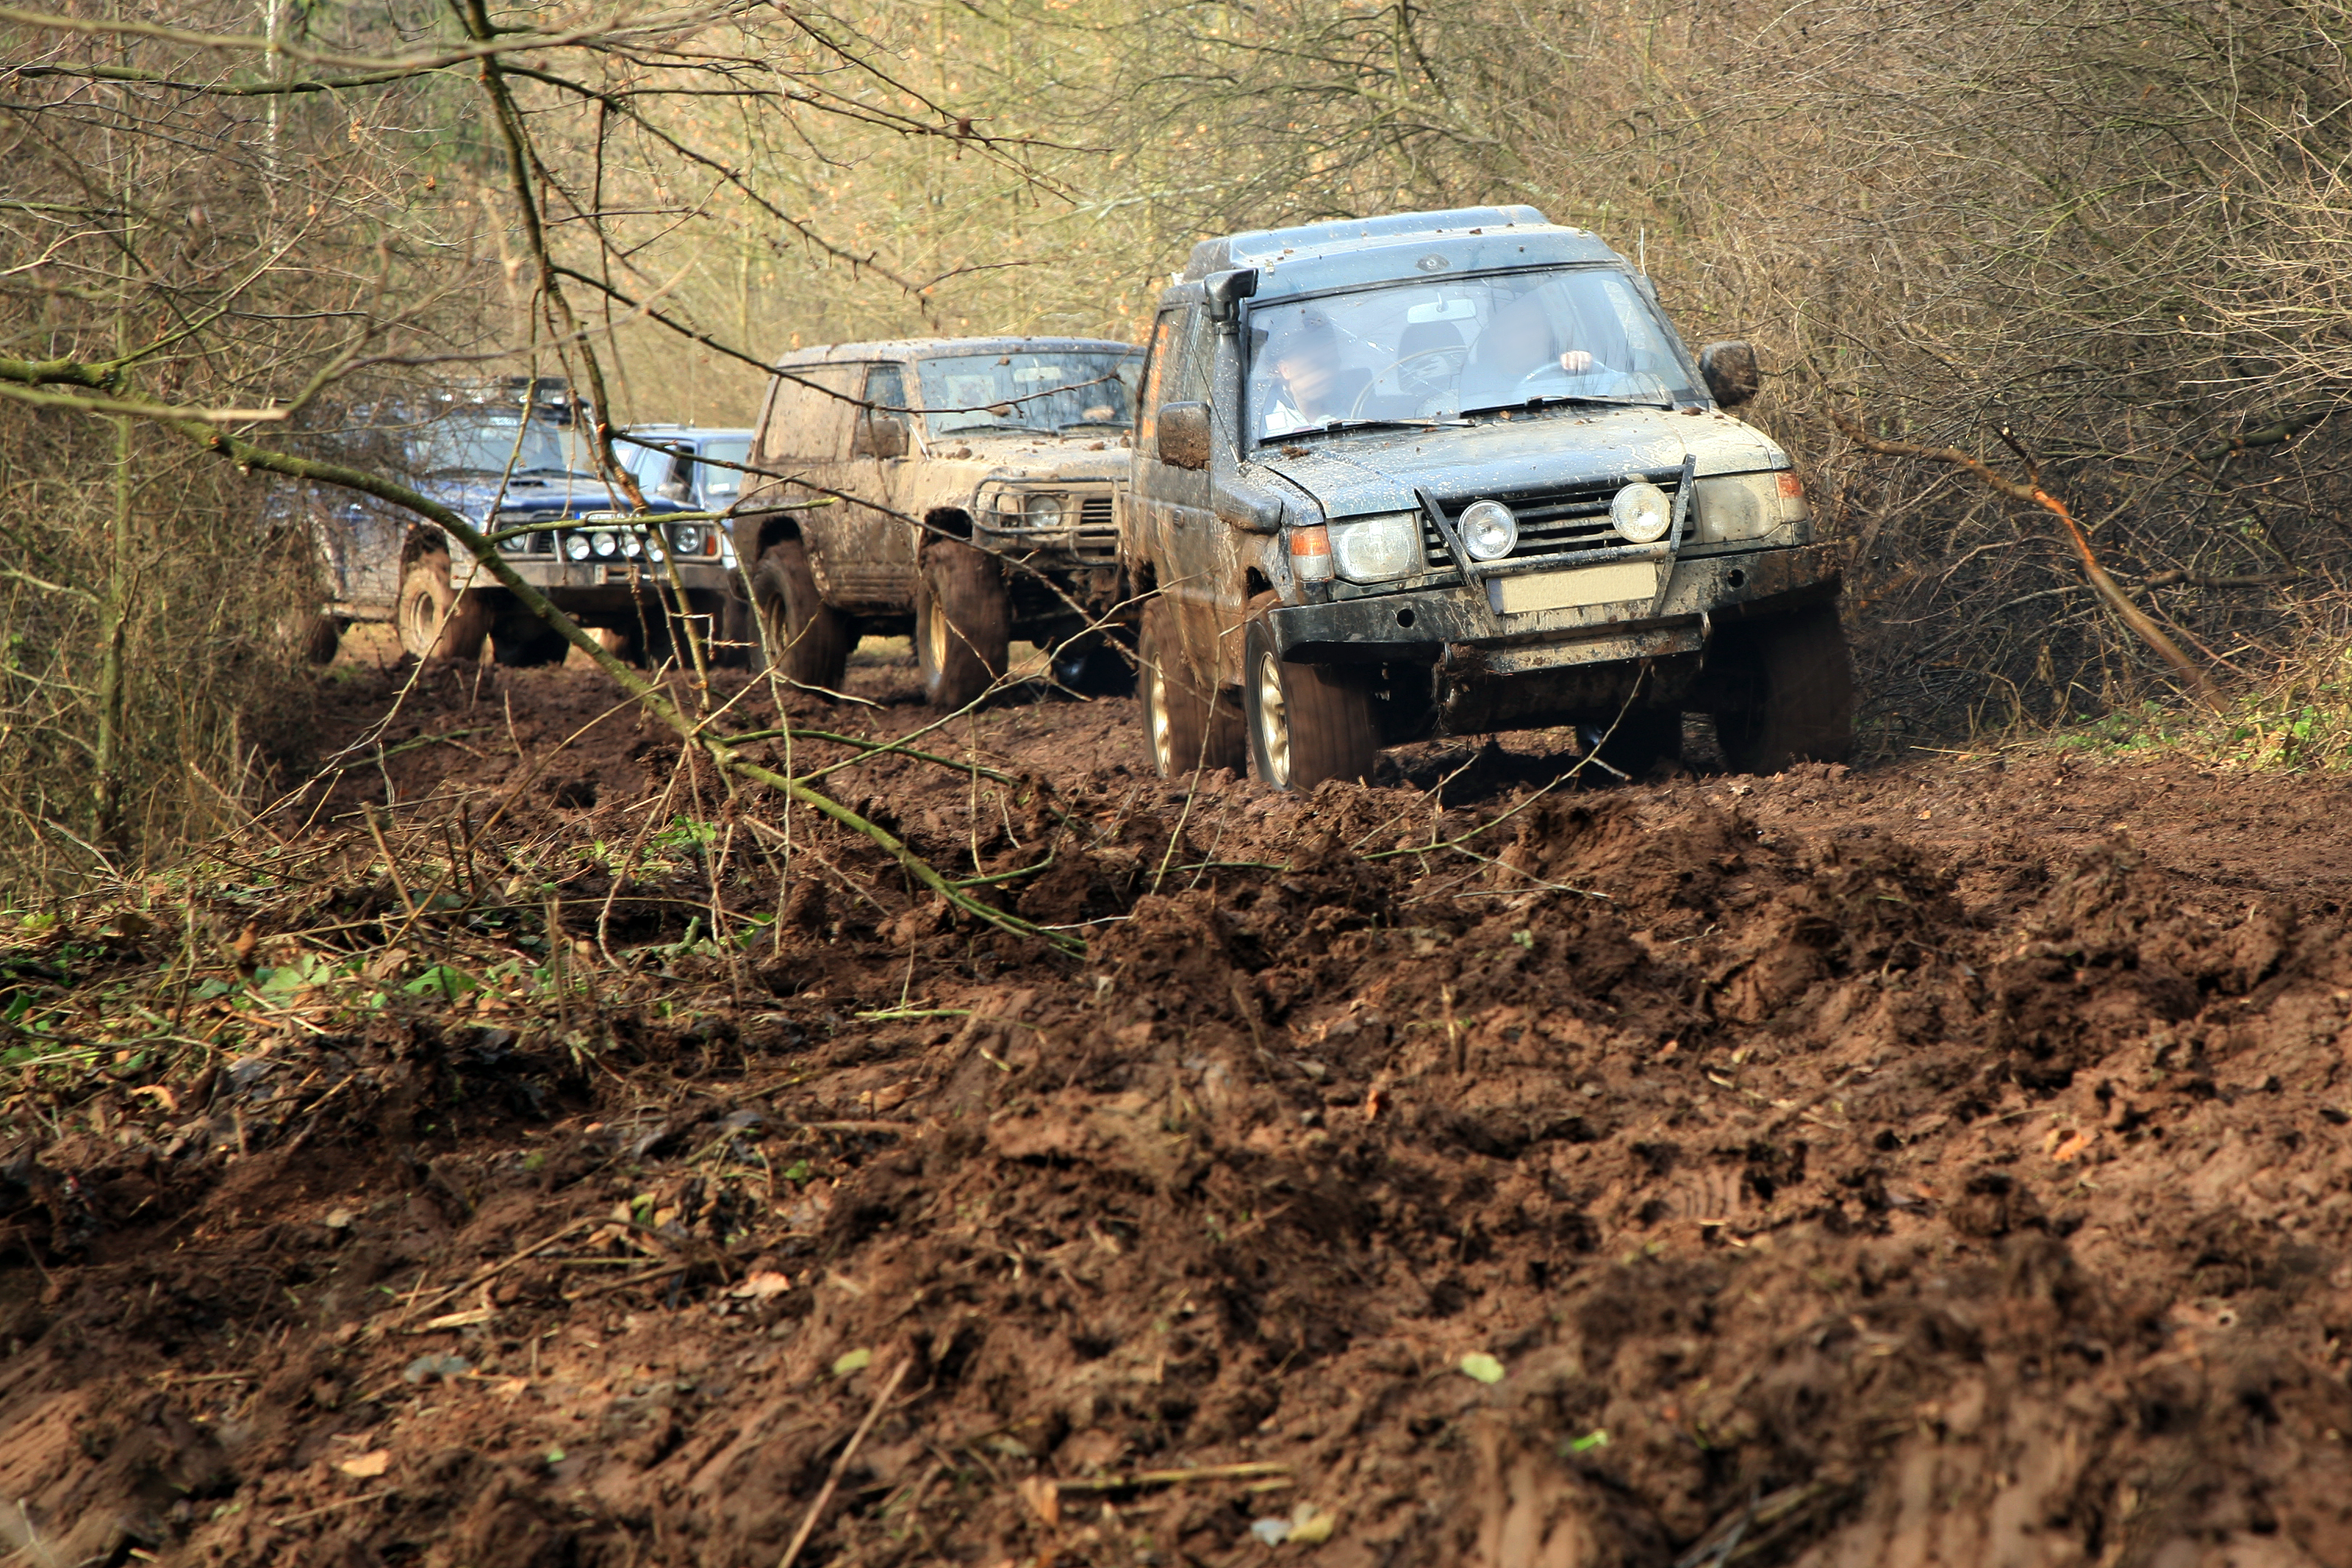 4X4 Fun in the Mud